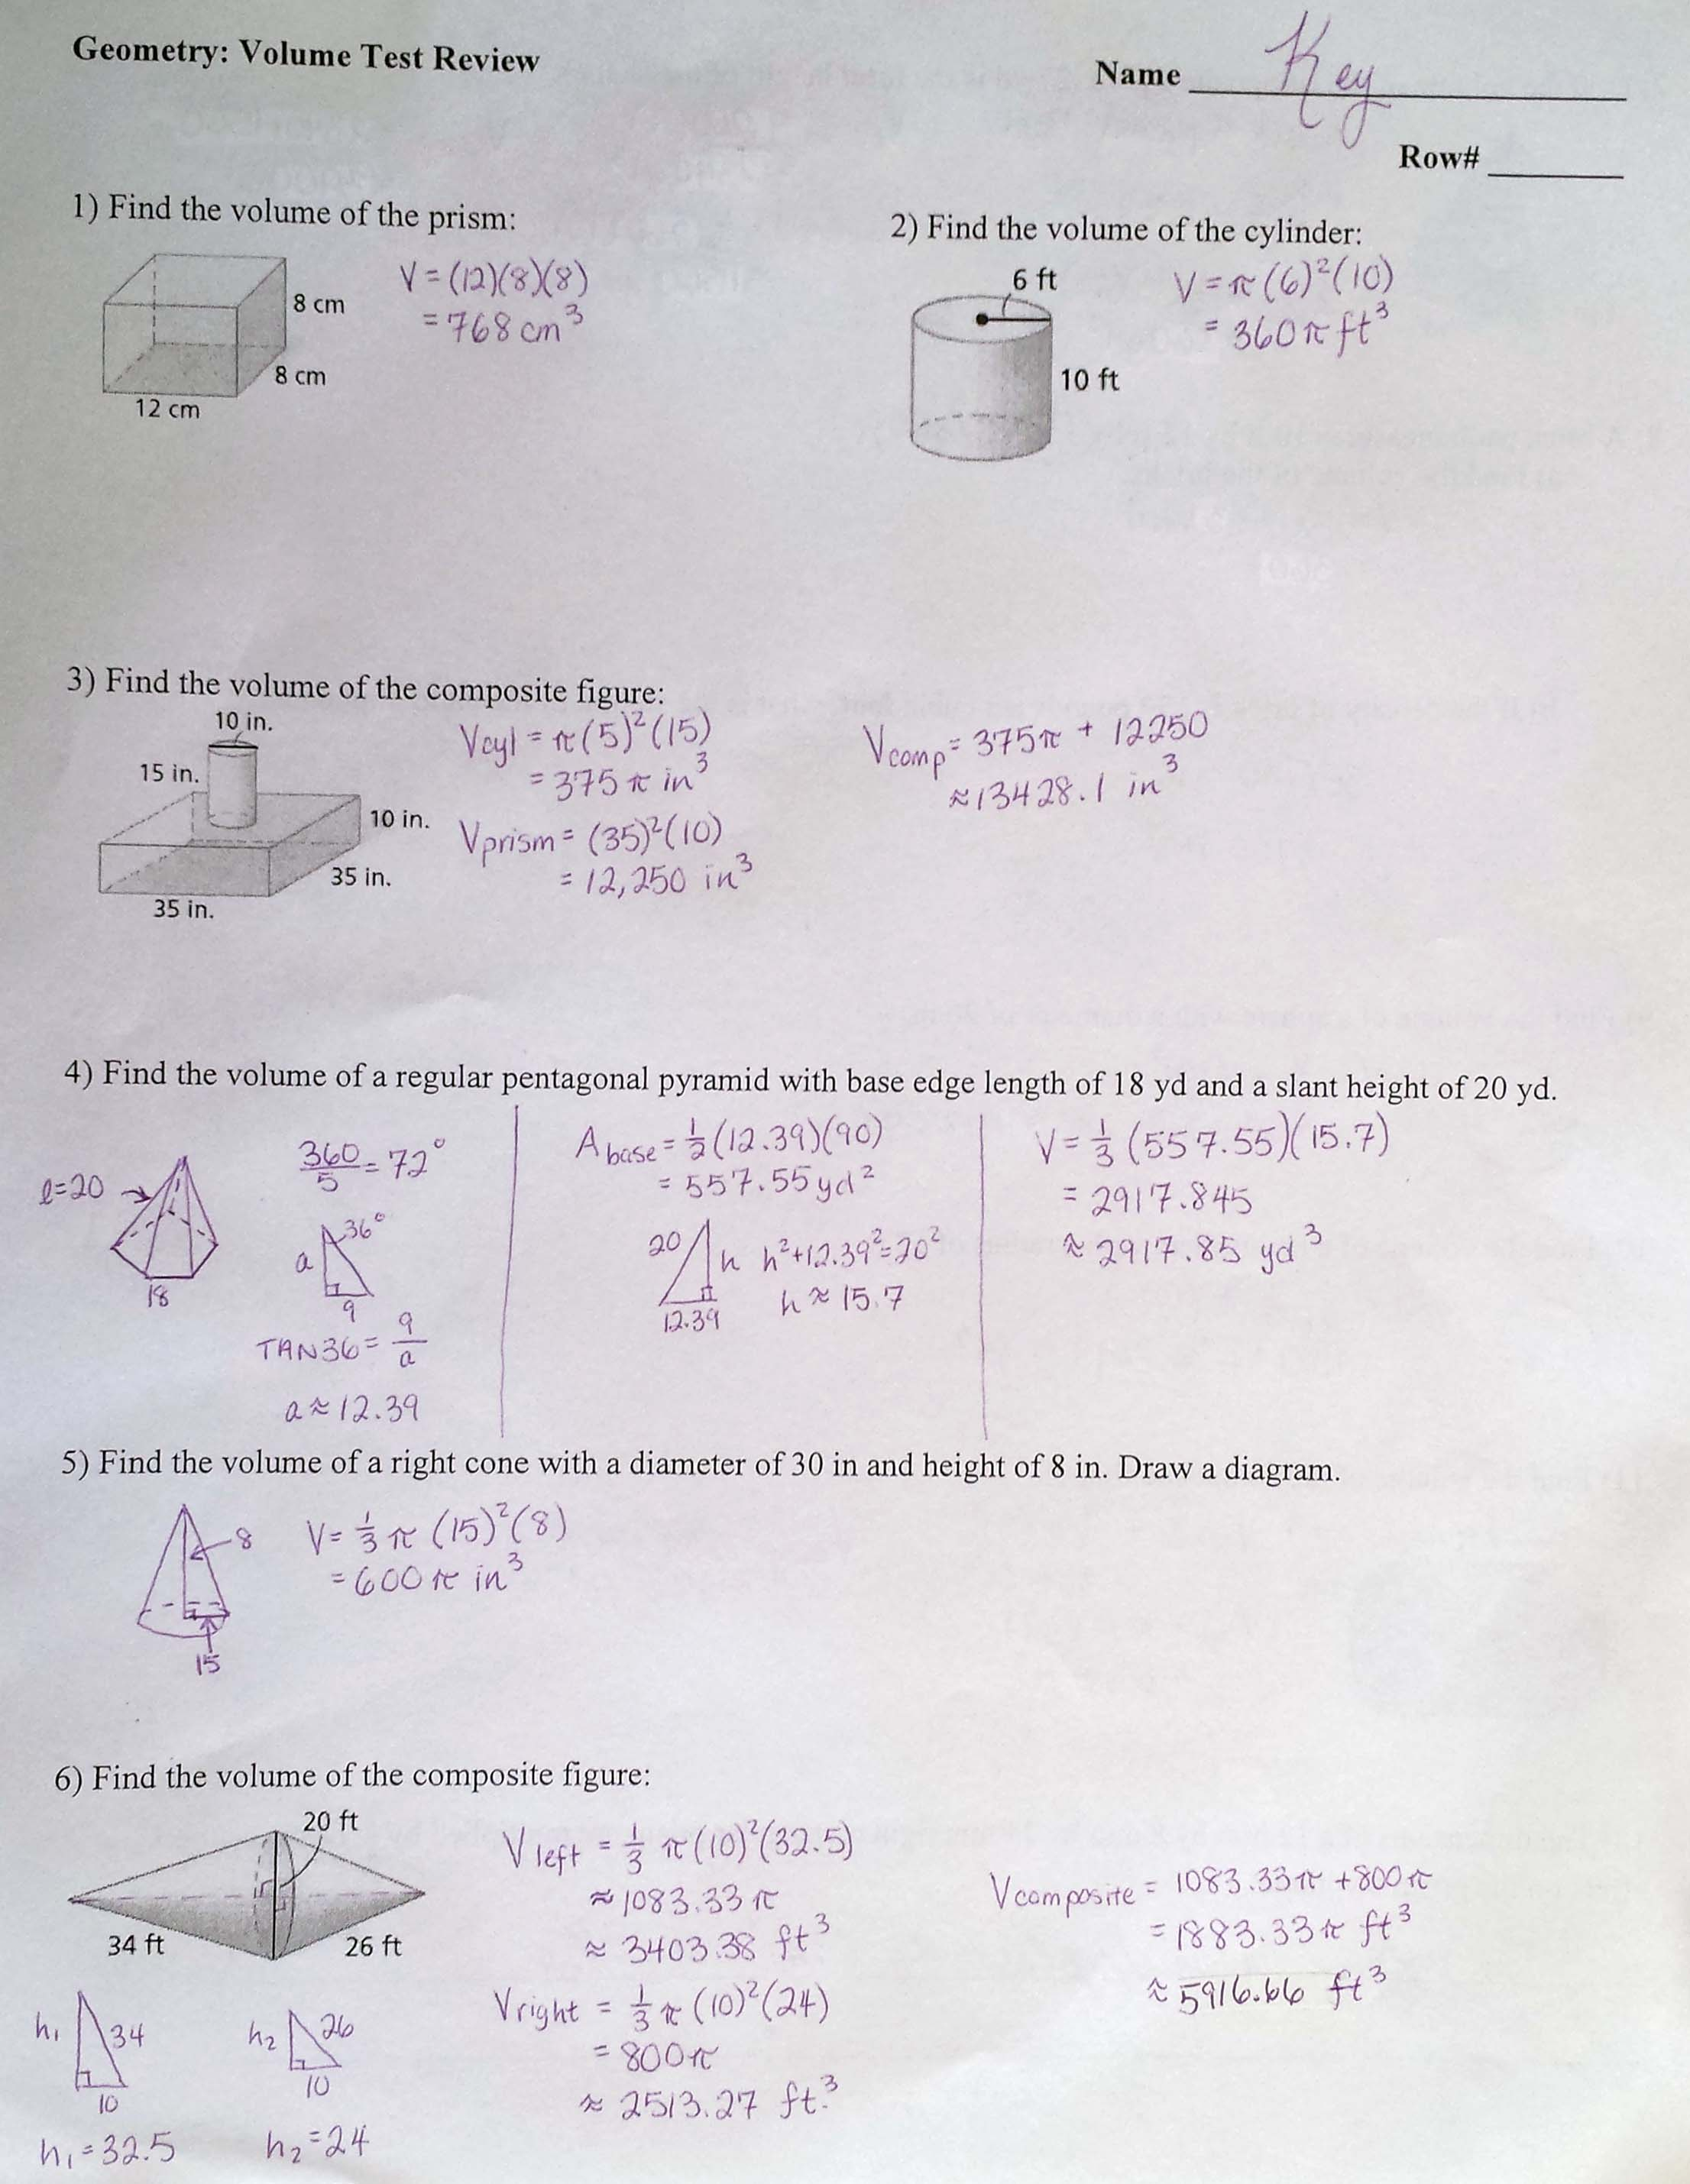 Worksheet Volume Of Prisms And Cylinders Worksheet Grass